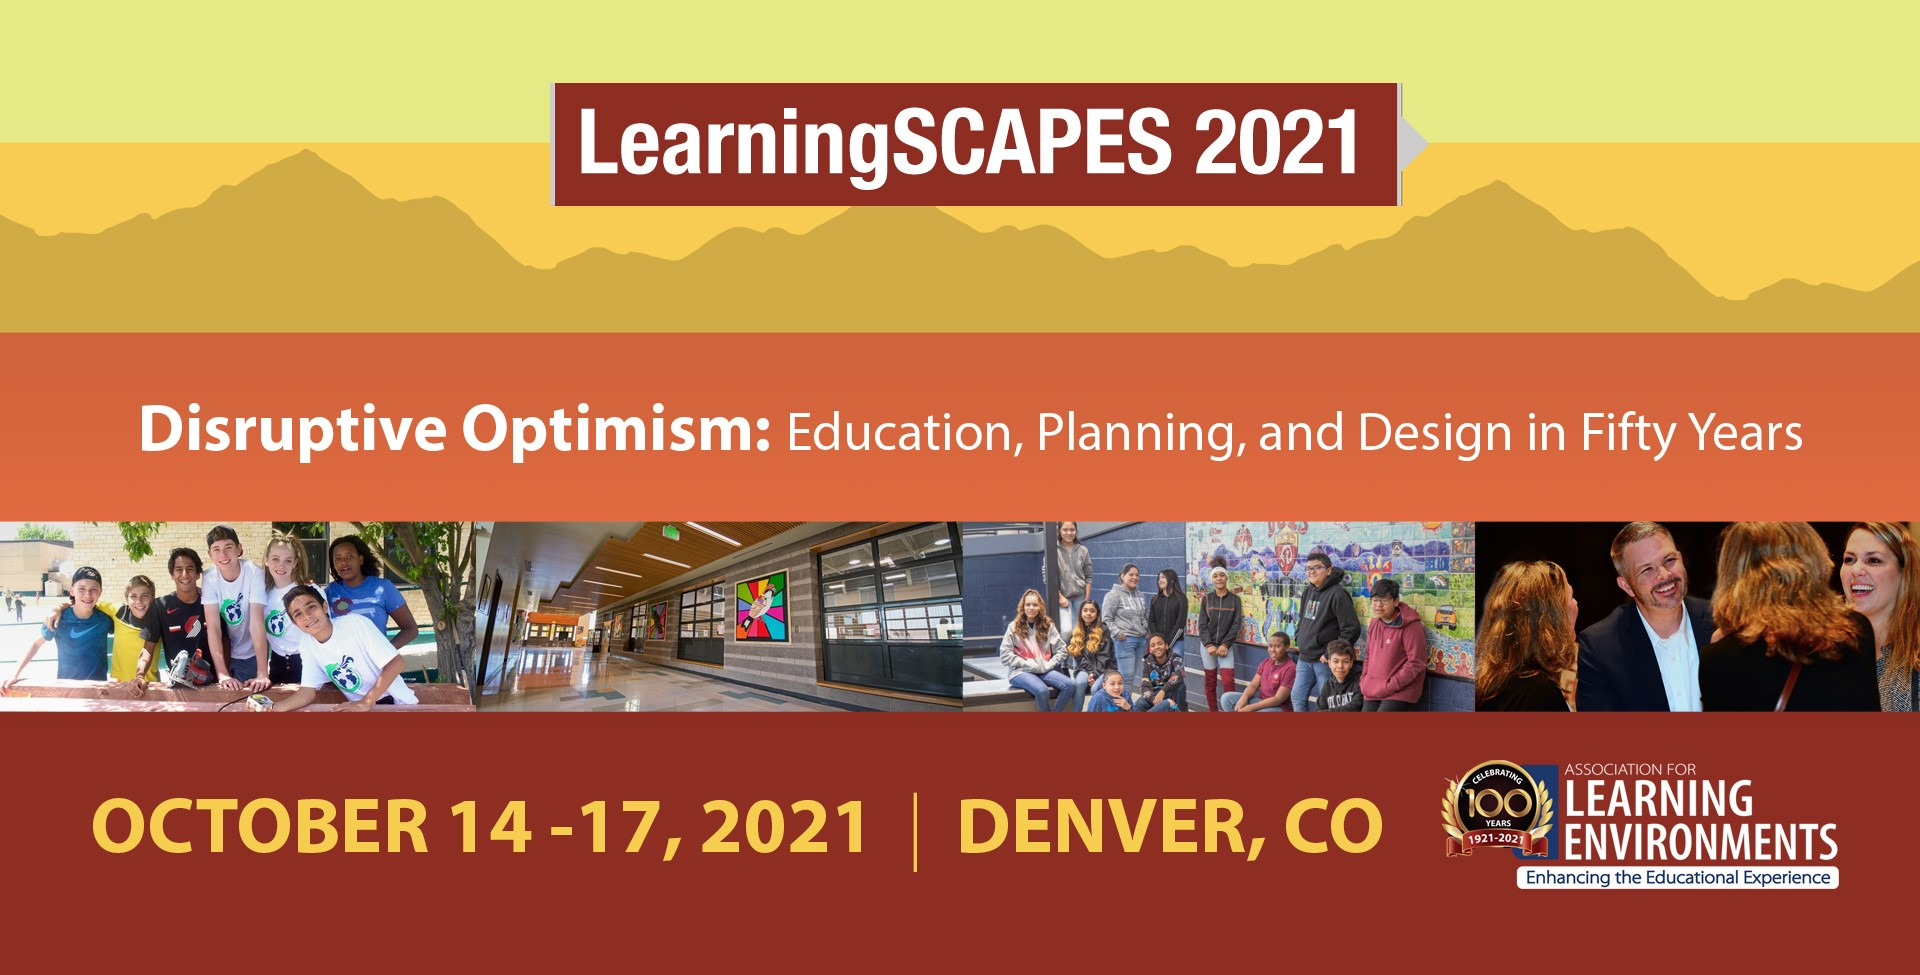 A4LE LearningSCAPES Conference 2021